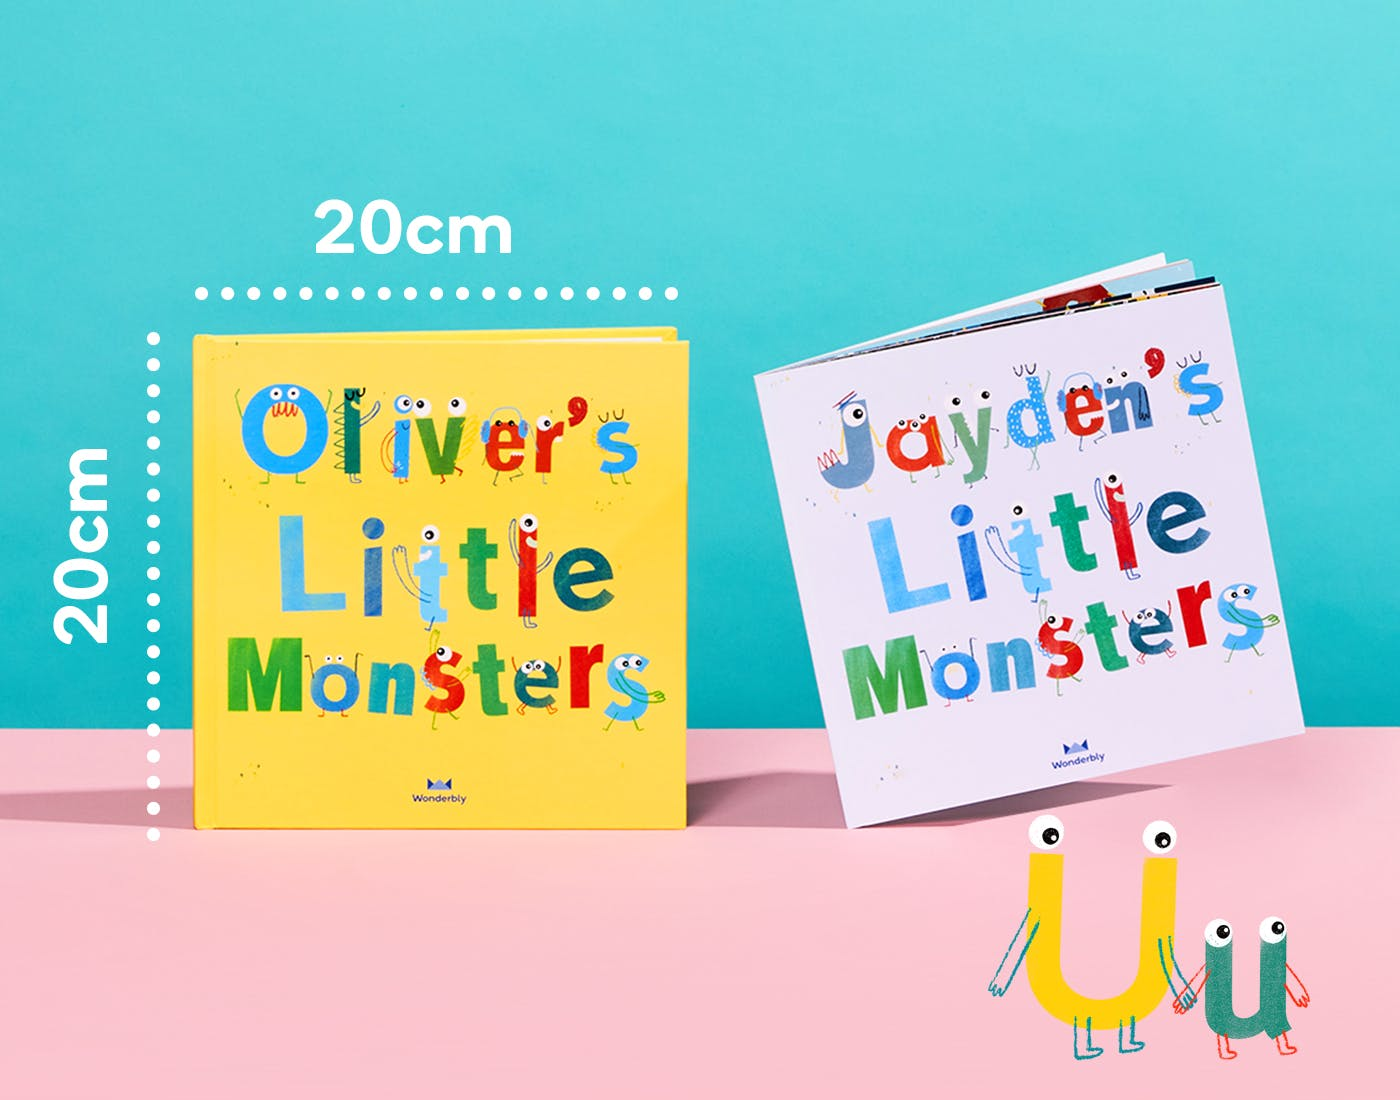 My Little Monsters Dimensions